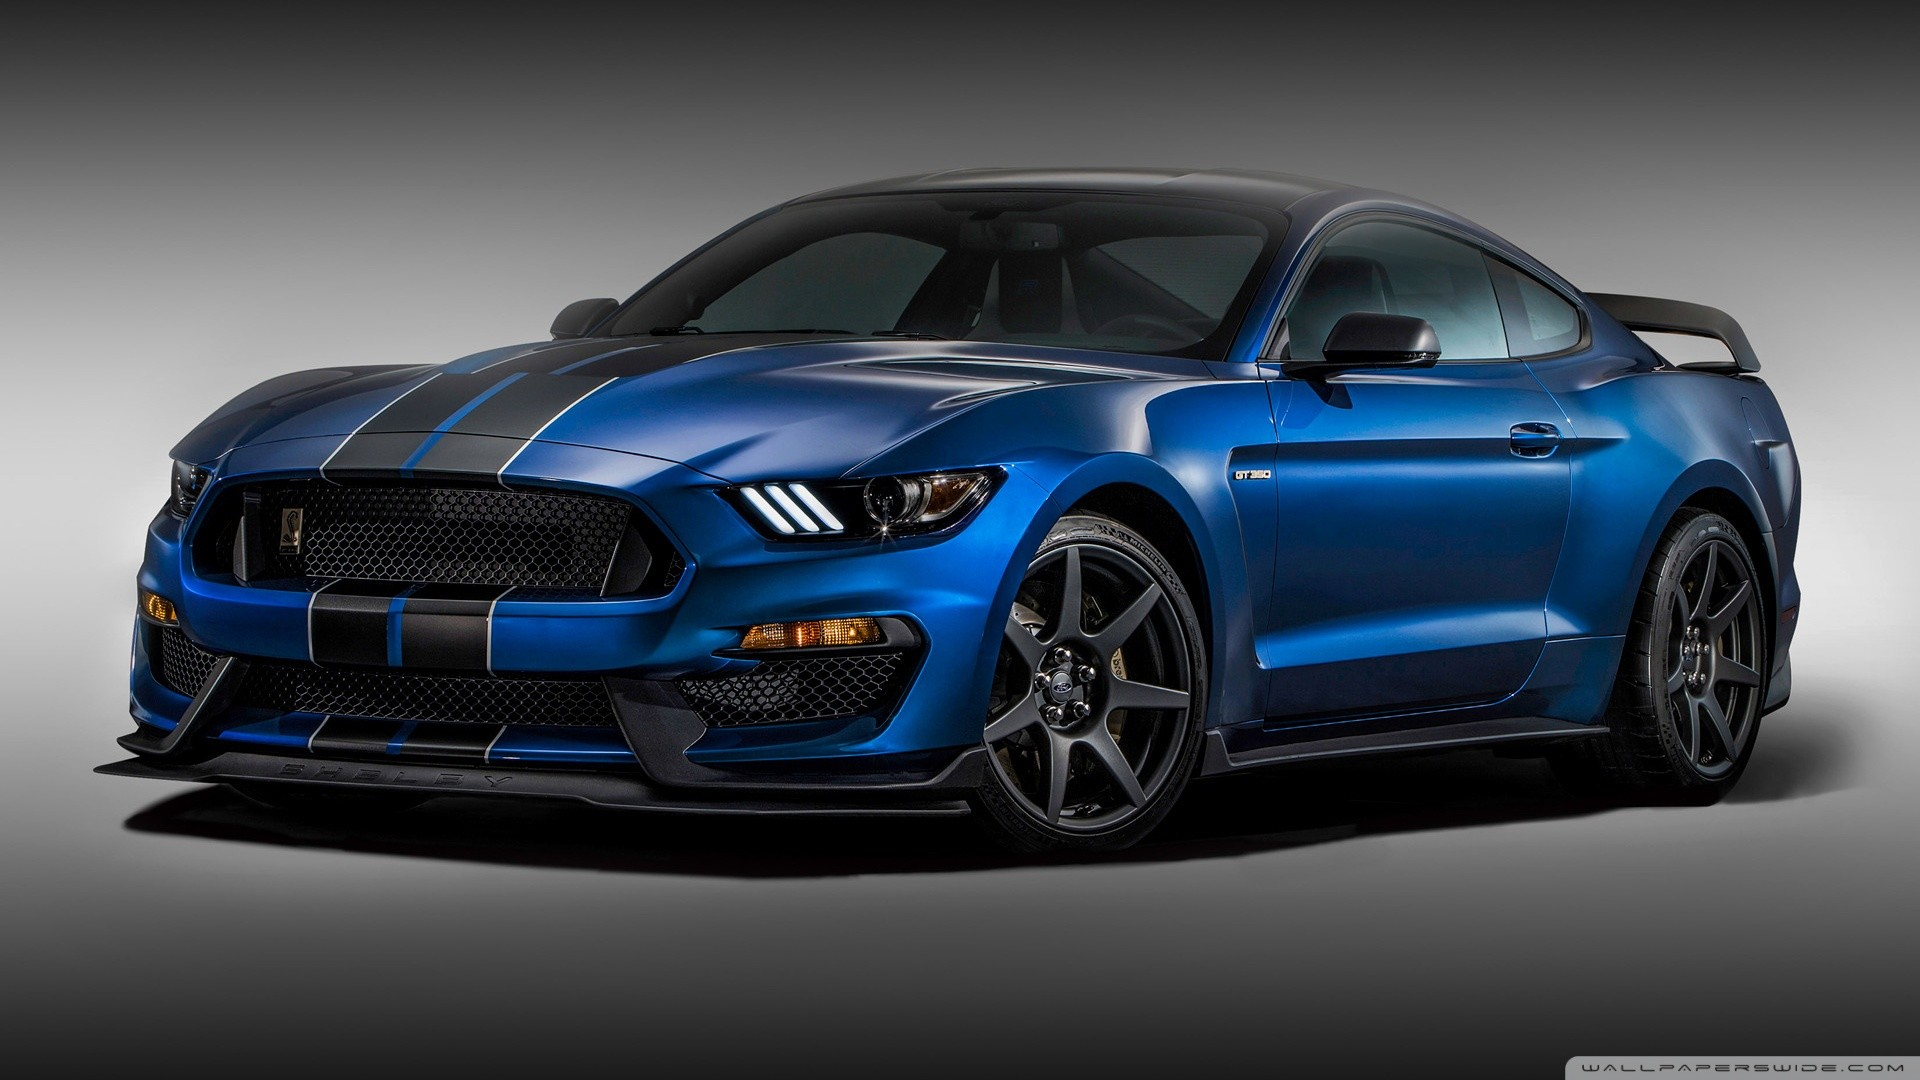 Ford Mustang Gt Wallpaper 4k - Ford